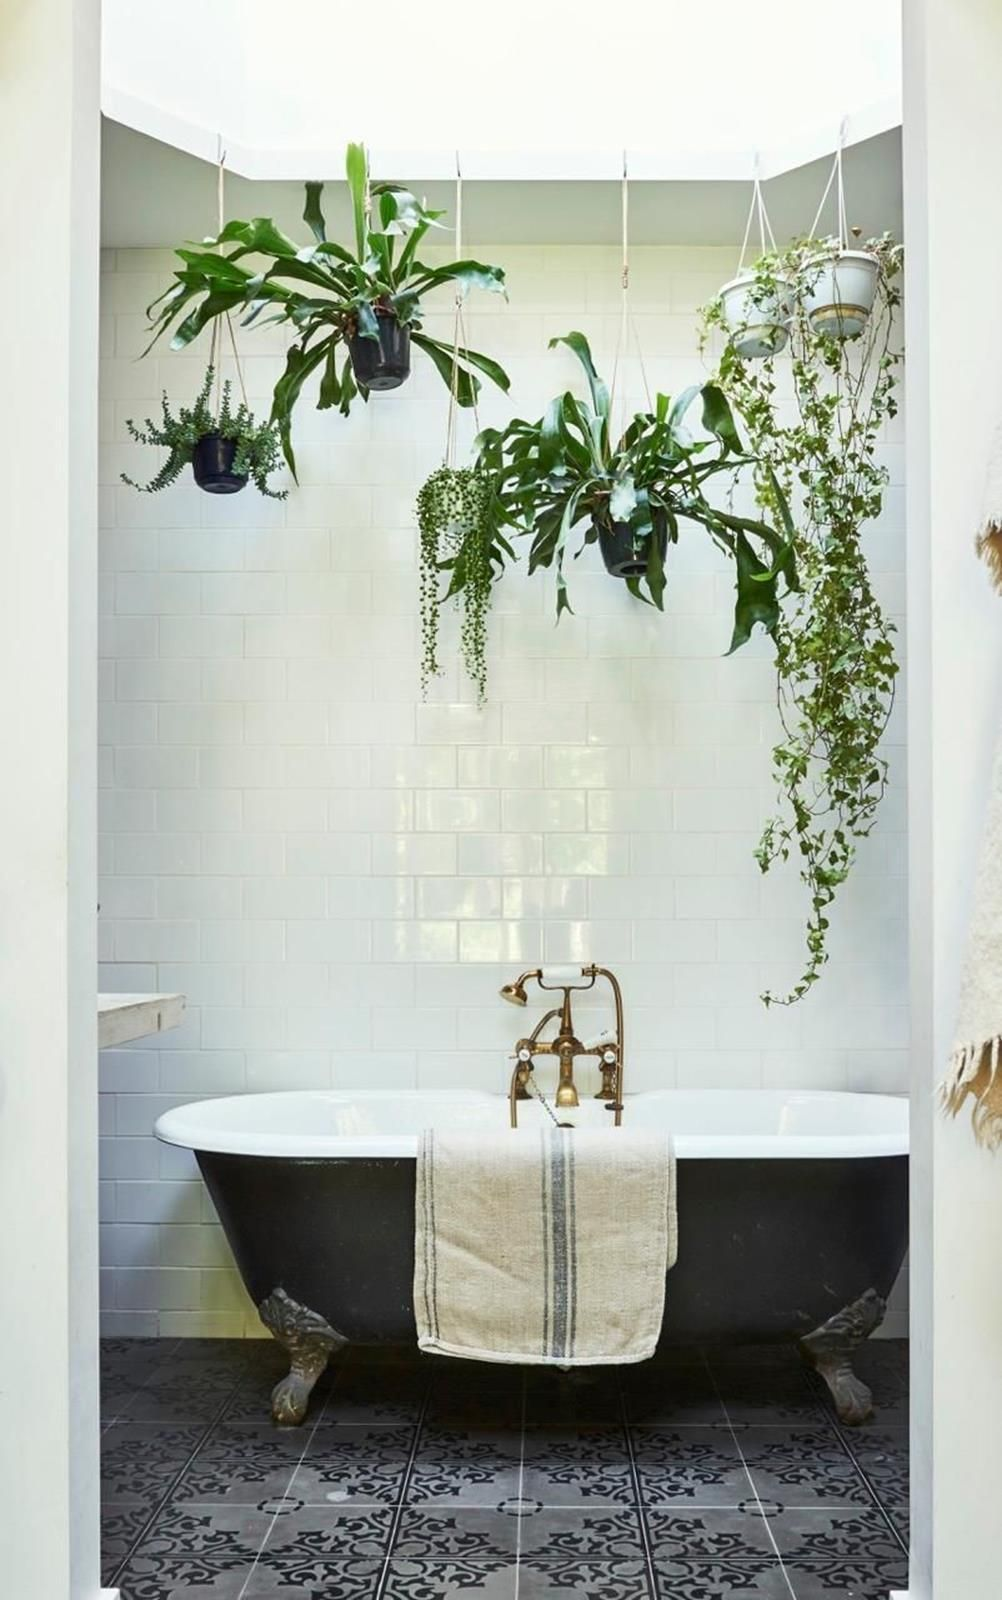 30 Perfect And Beautiful Hanging Bathroom Plants Decor Ideas Retrohomedecor Bathroom Plants Decor Bathroom Inspiration Decor Bathroom Plants